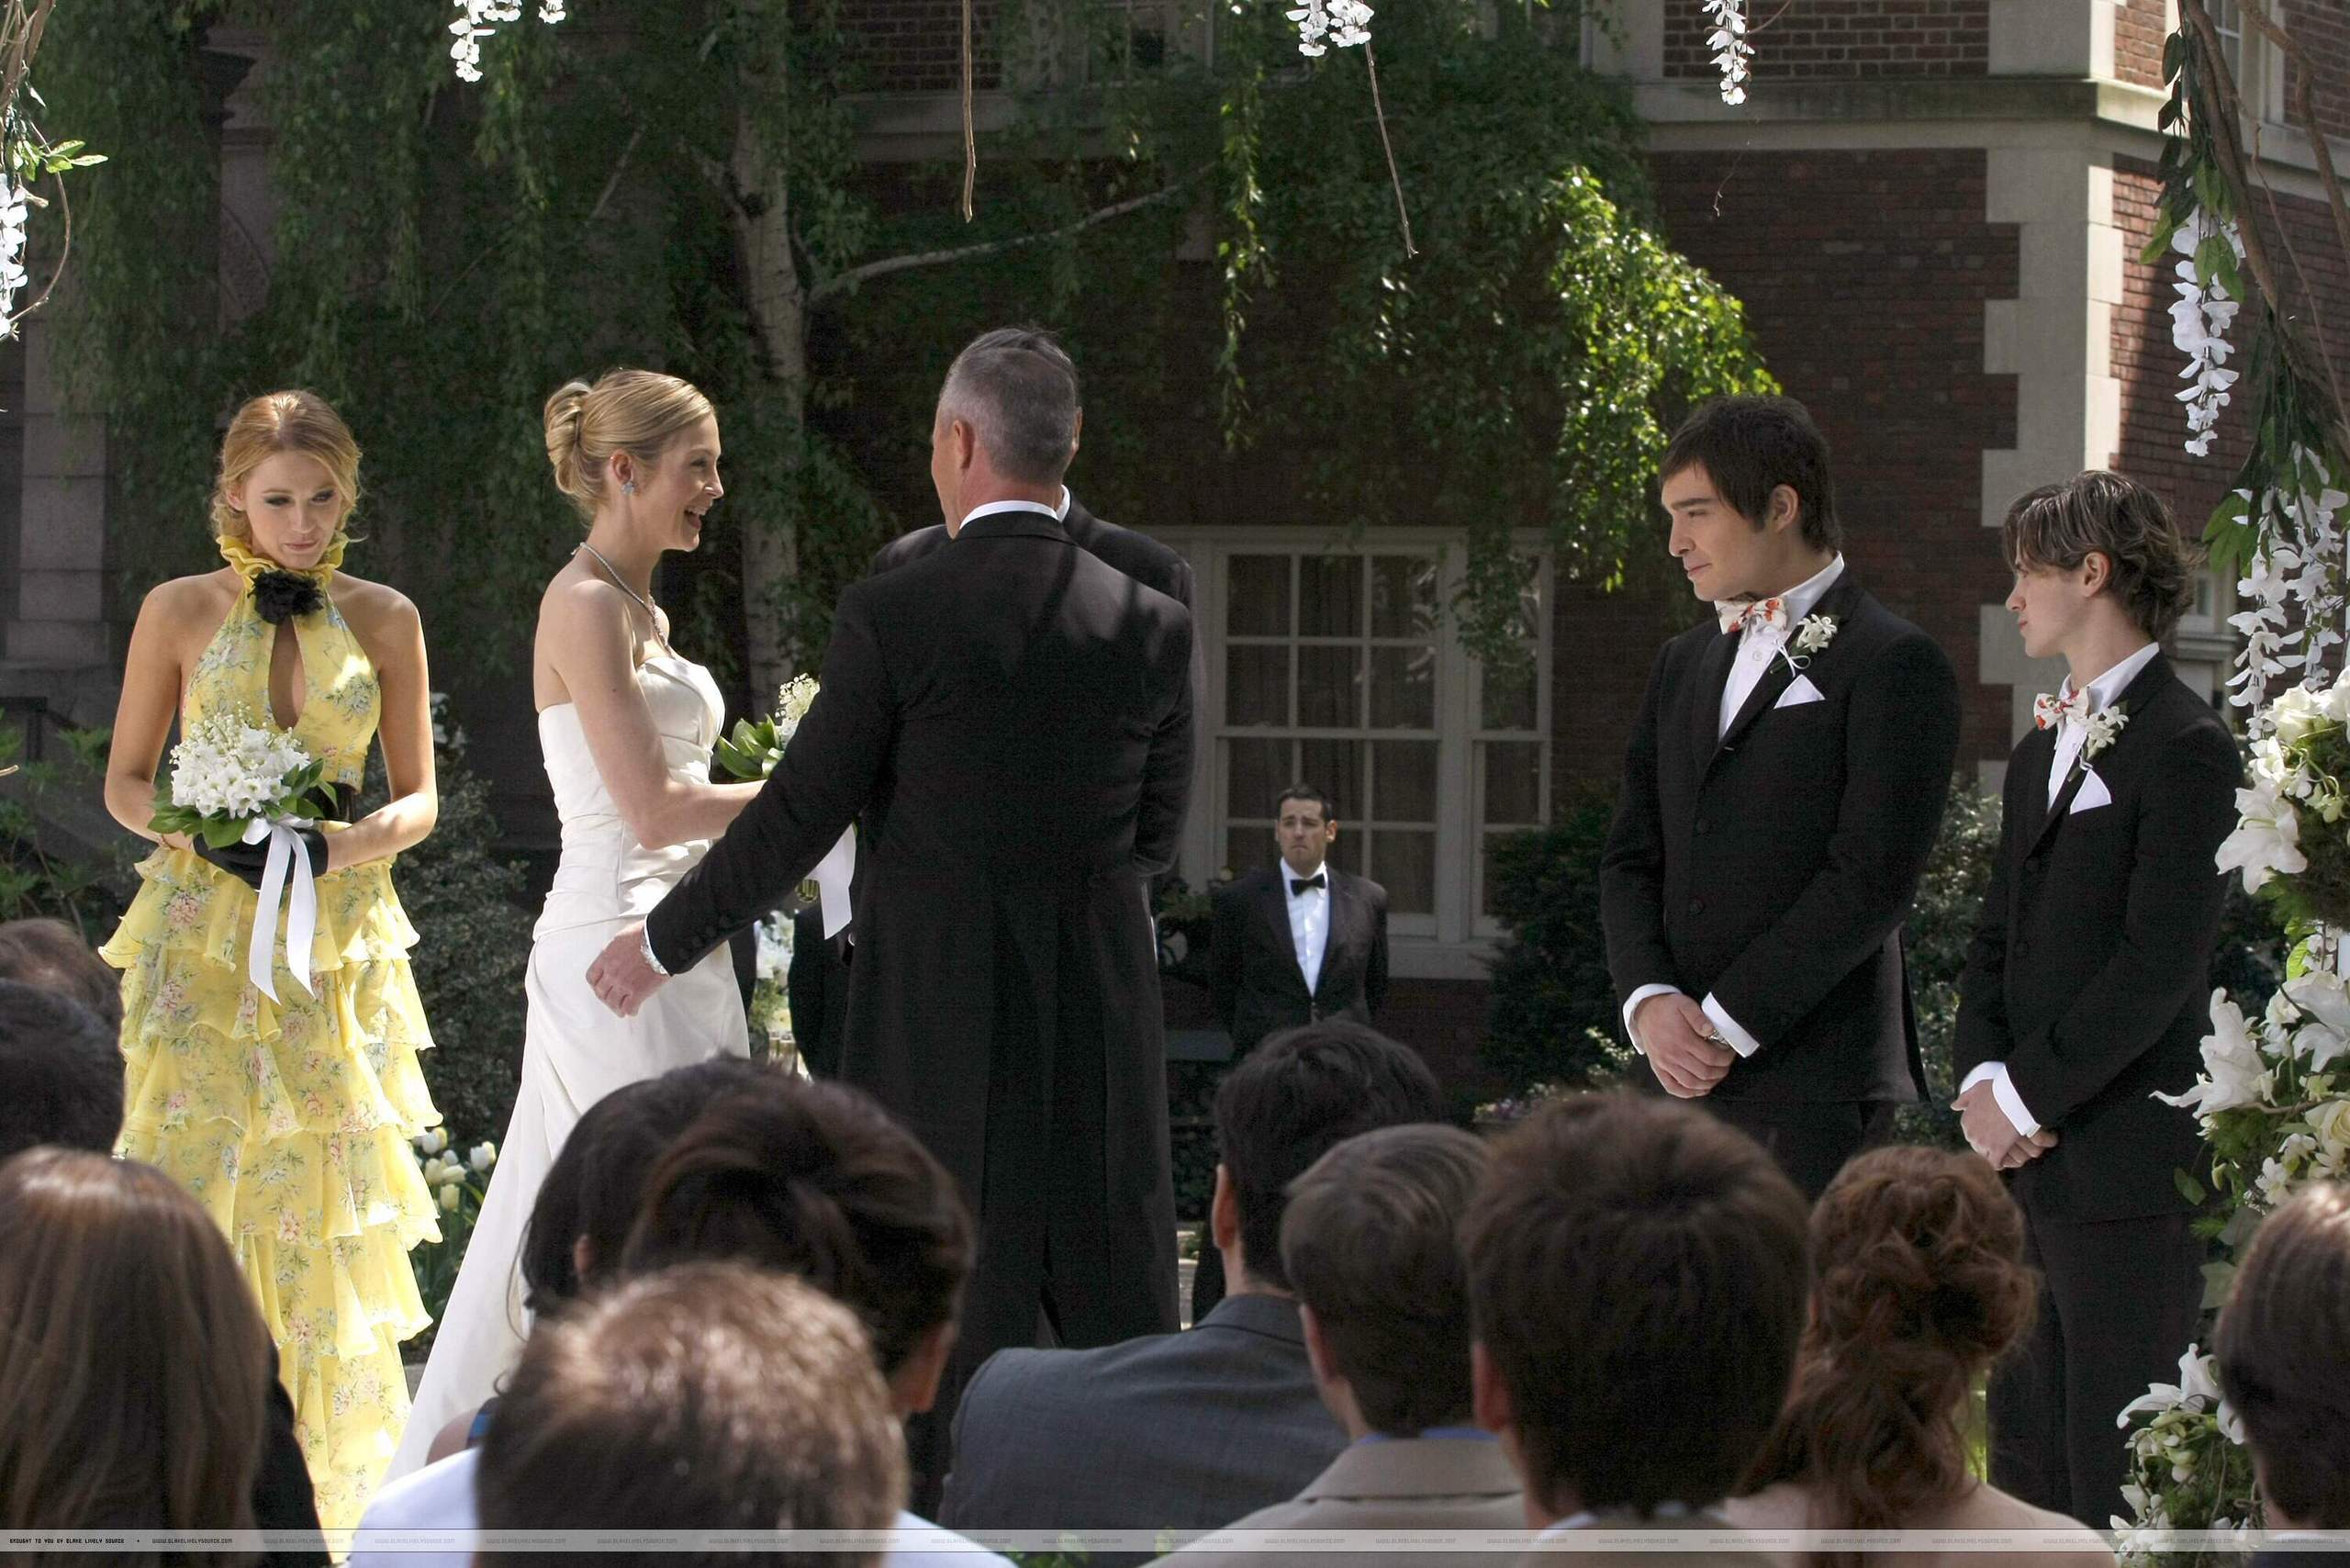 http://images2.fanpop.com/image/photos/10900000/1-18-Episode-Stills-serena-van-der-woodsen-10964740-2560-1708.jpg